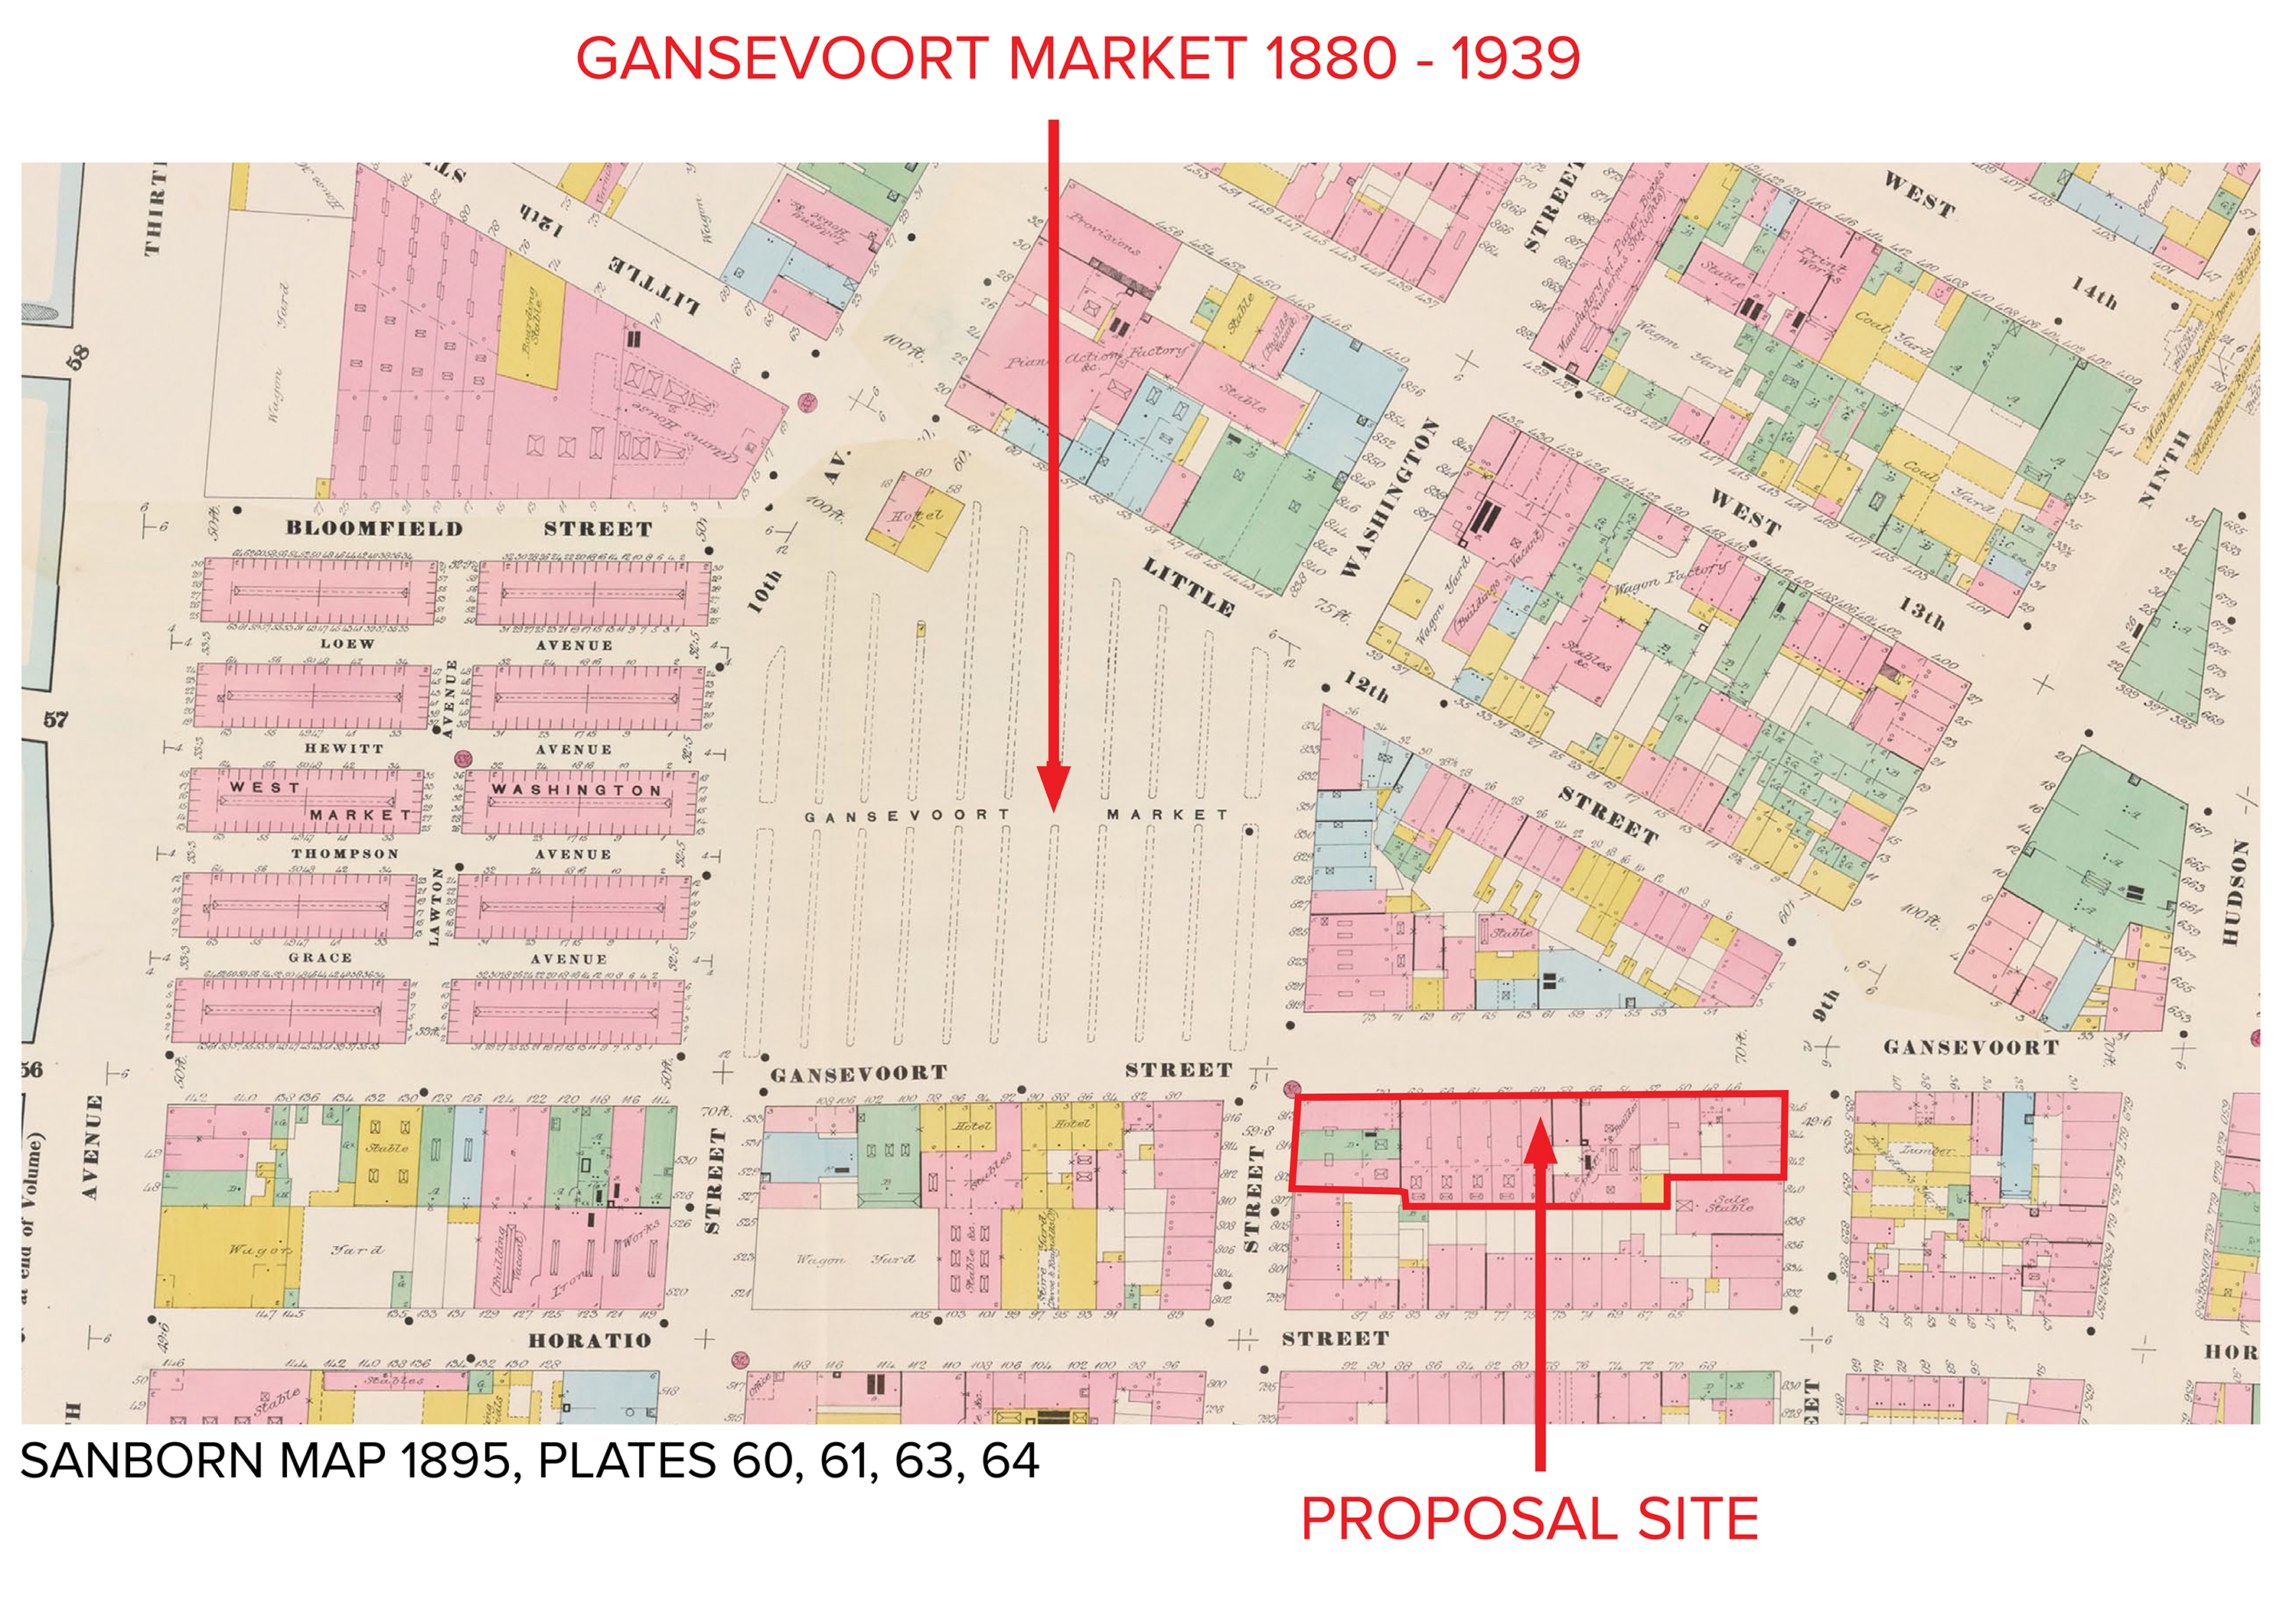 Gansevoort Market architects tout gansevoort market plan as return to history - new